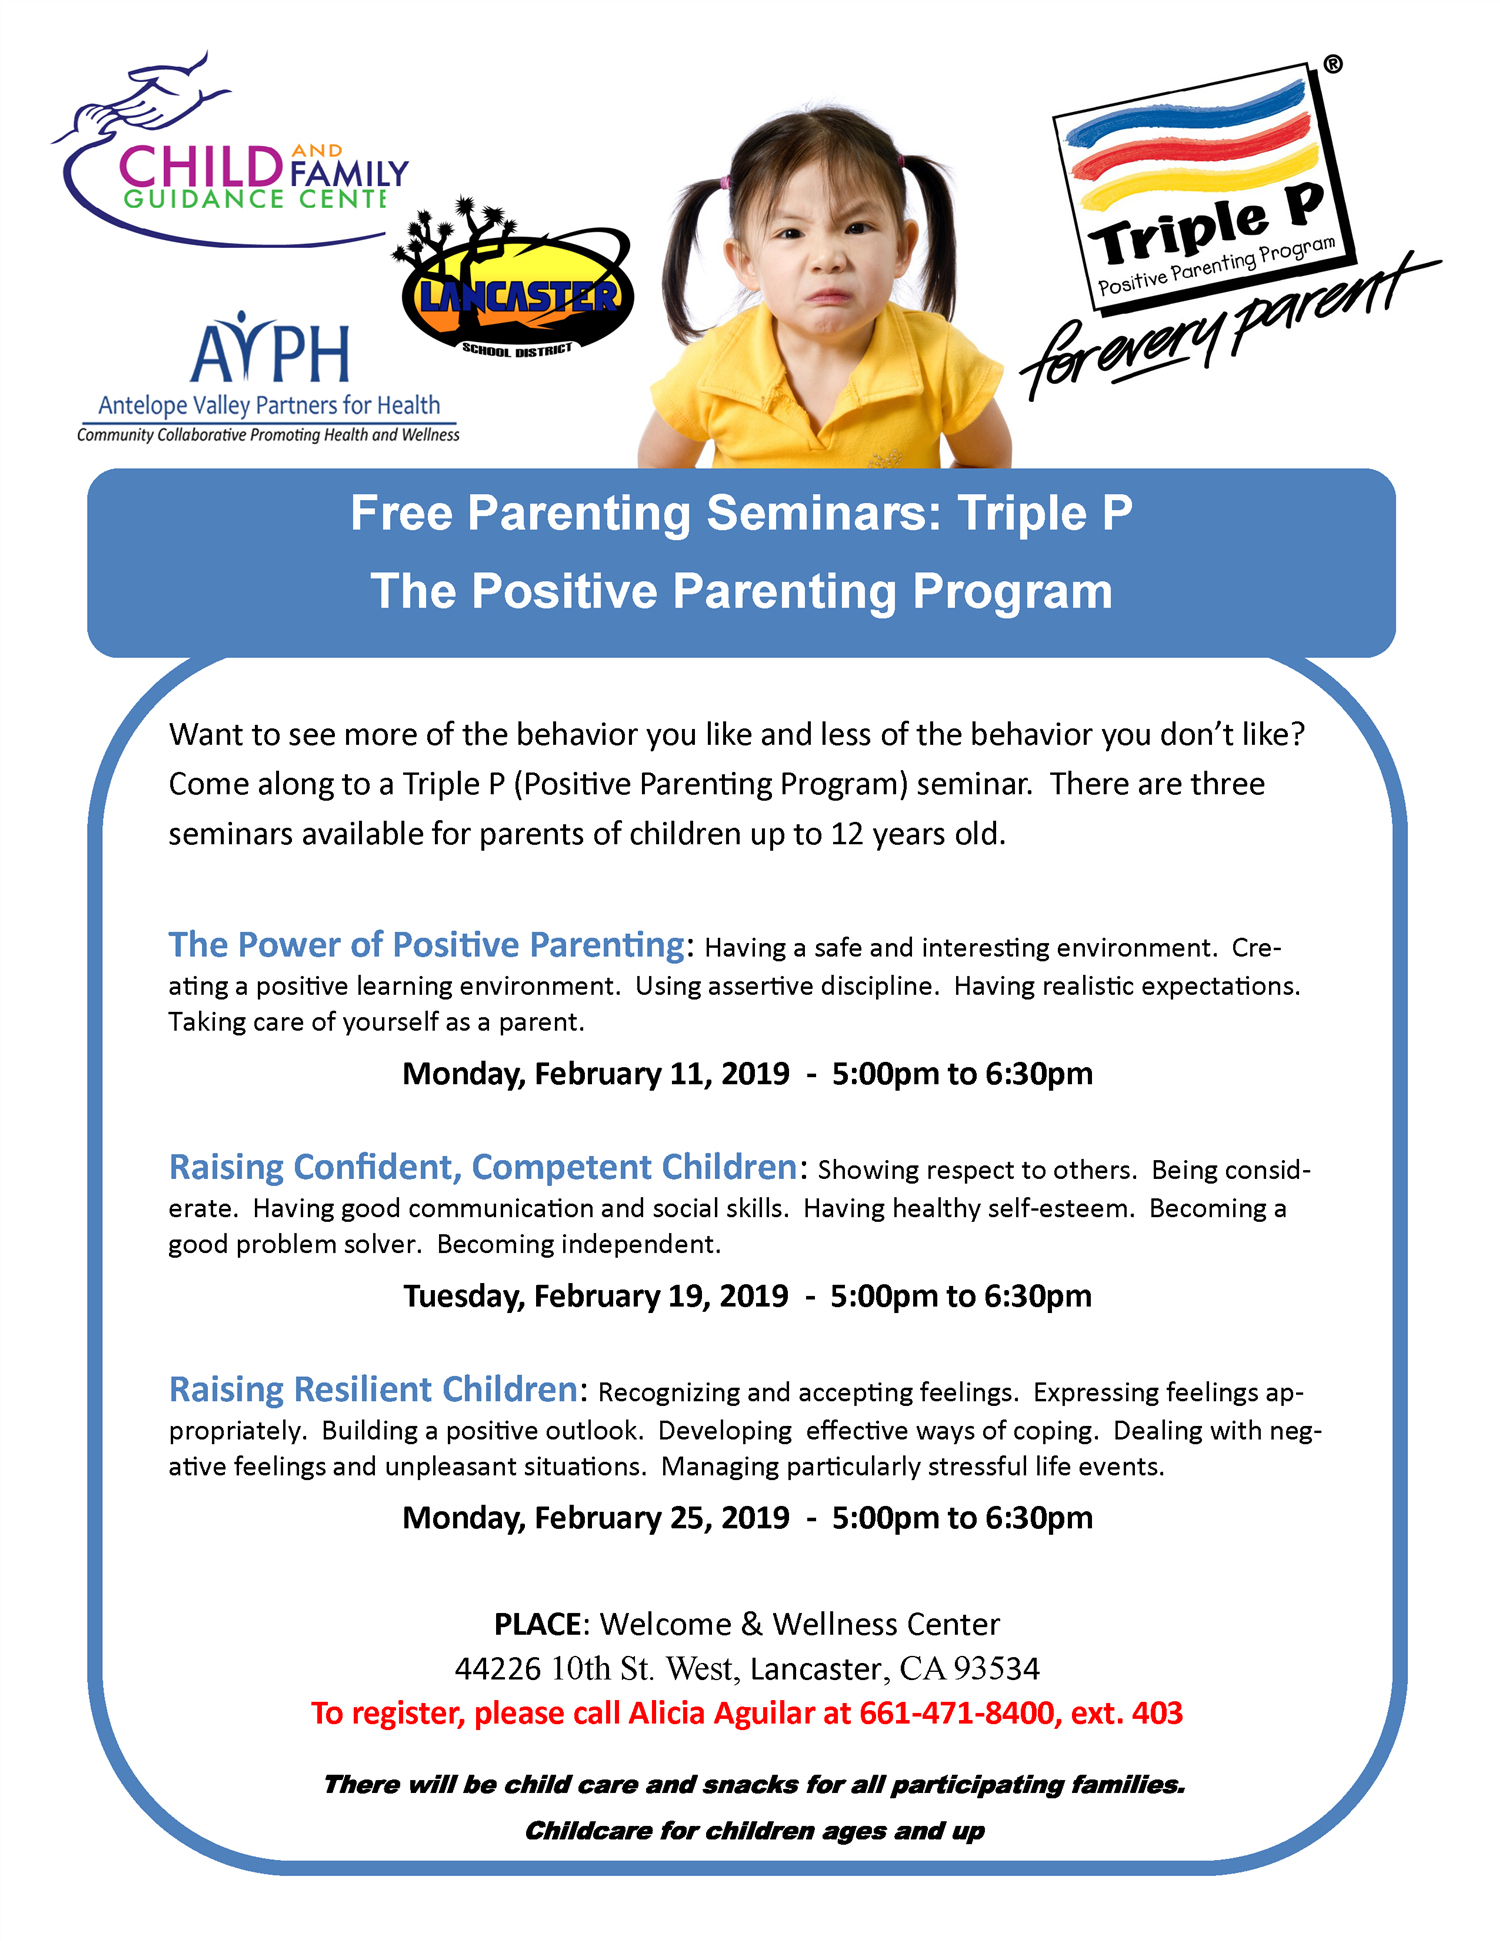 Free Parenting Seminars: Triple P The Positive Parent Program